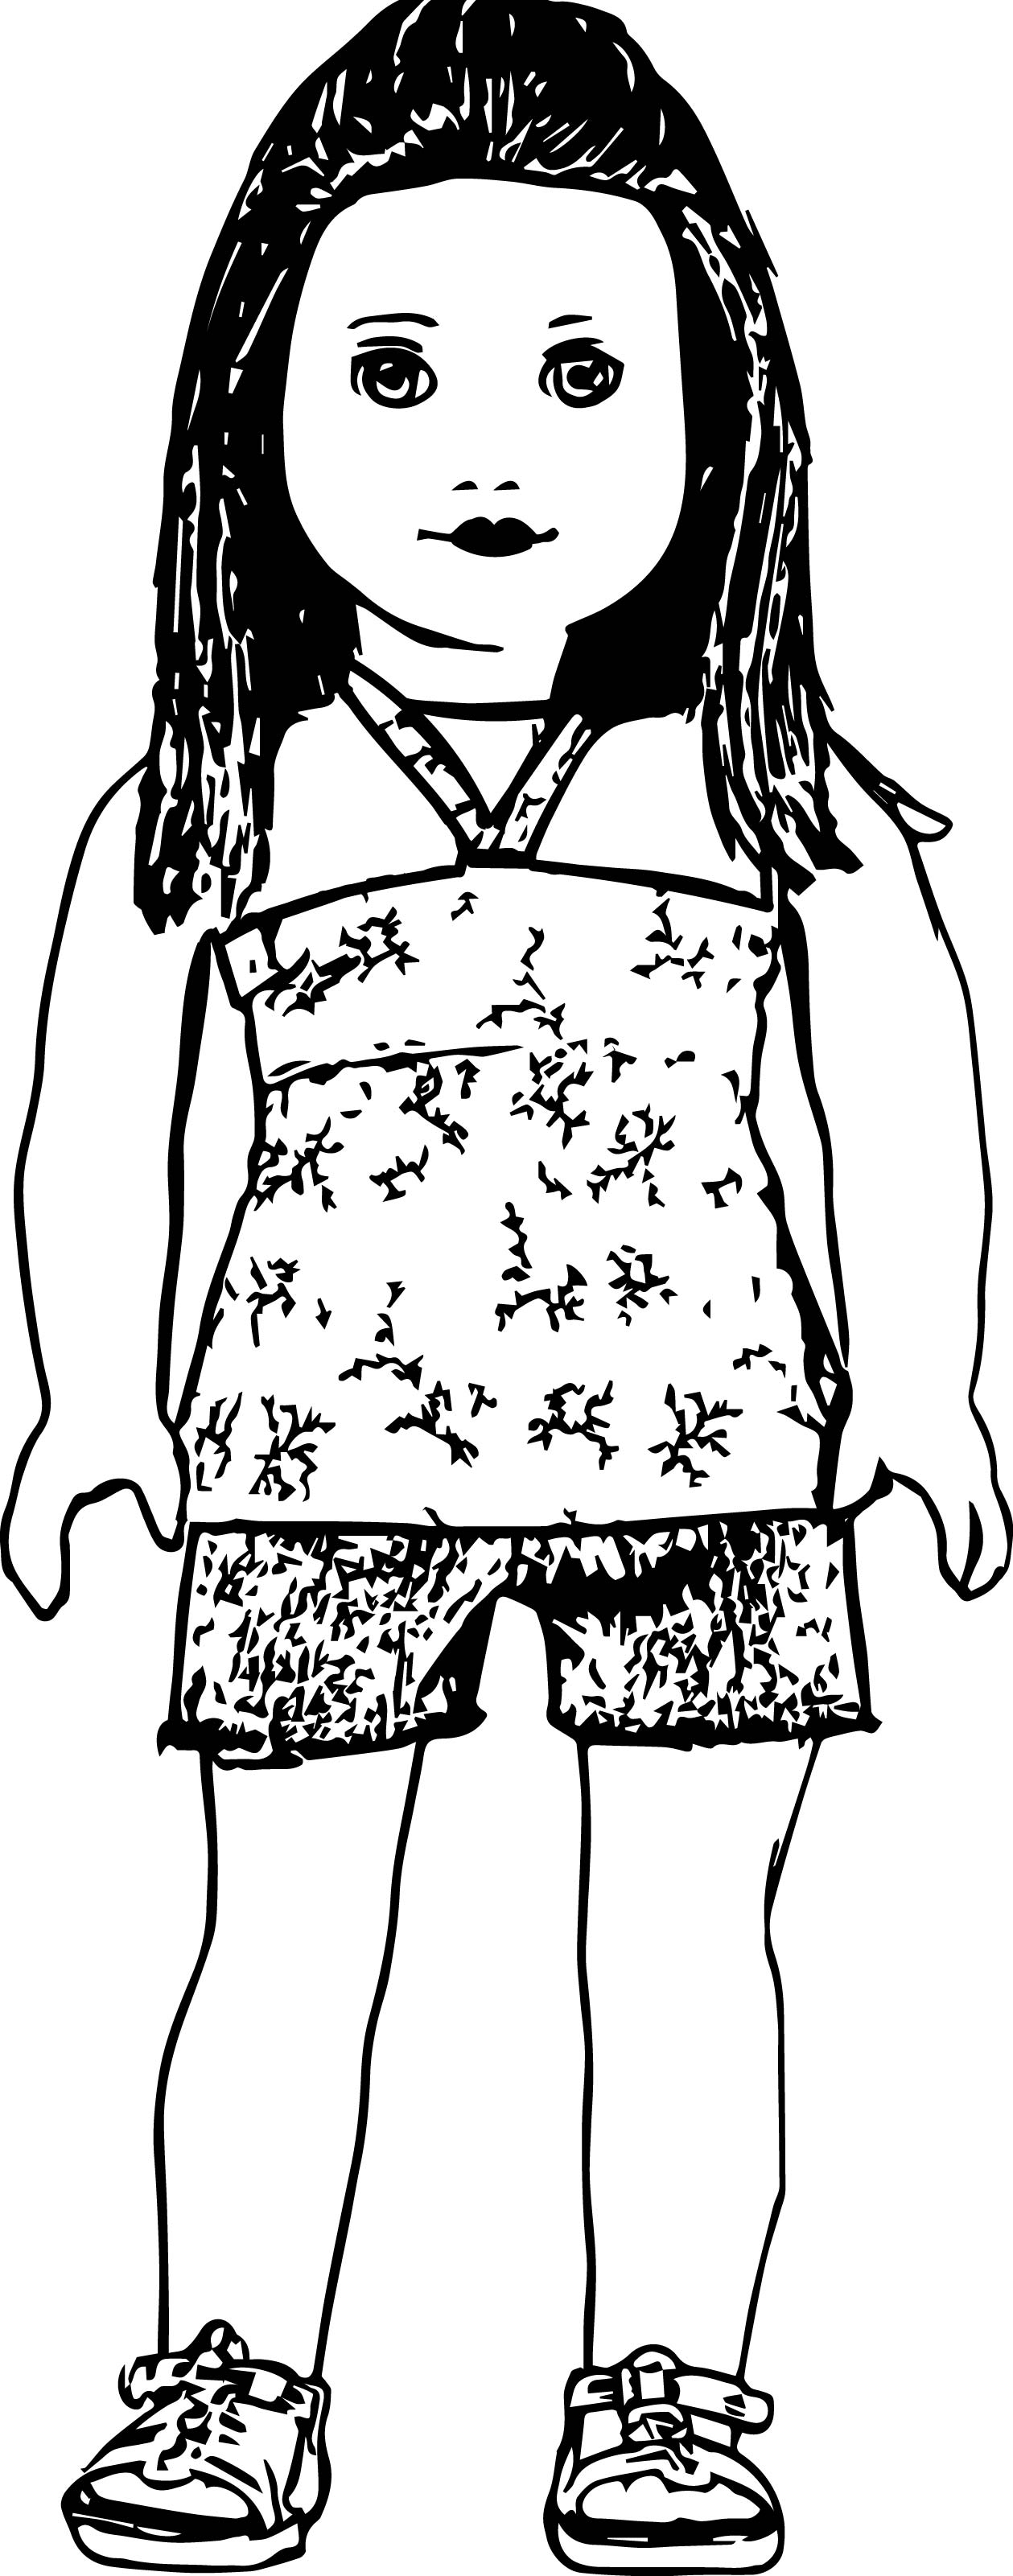 dolls colouring pages doll coloring pages to download and print for free colouring pages dolls